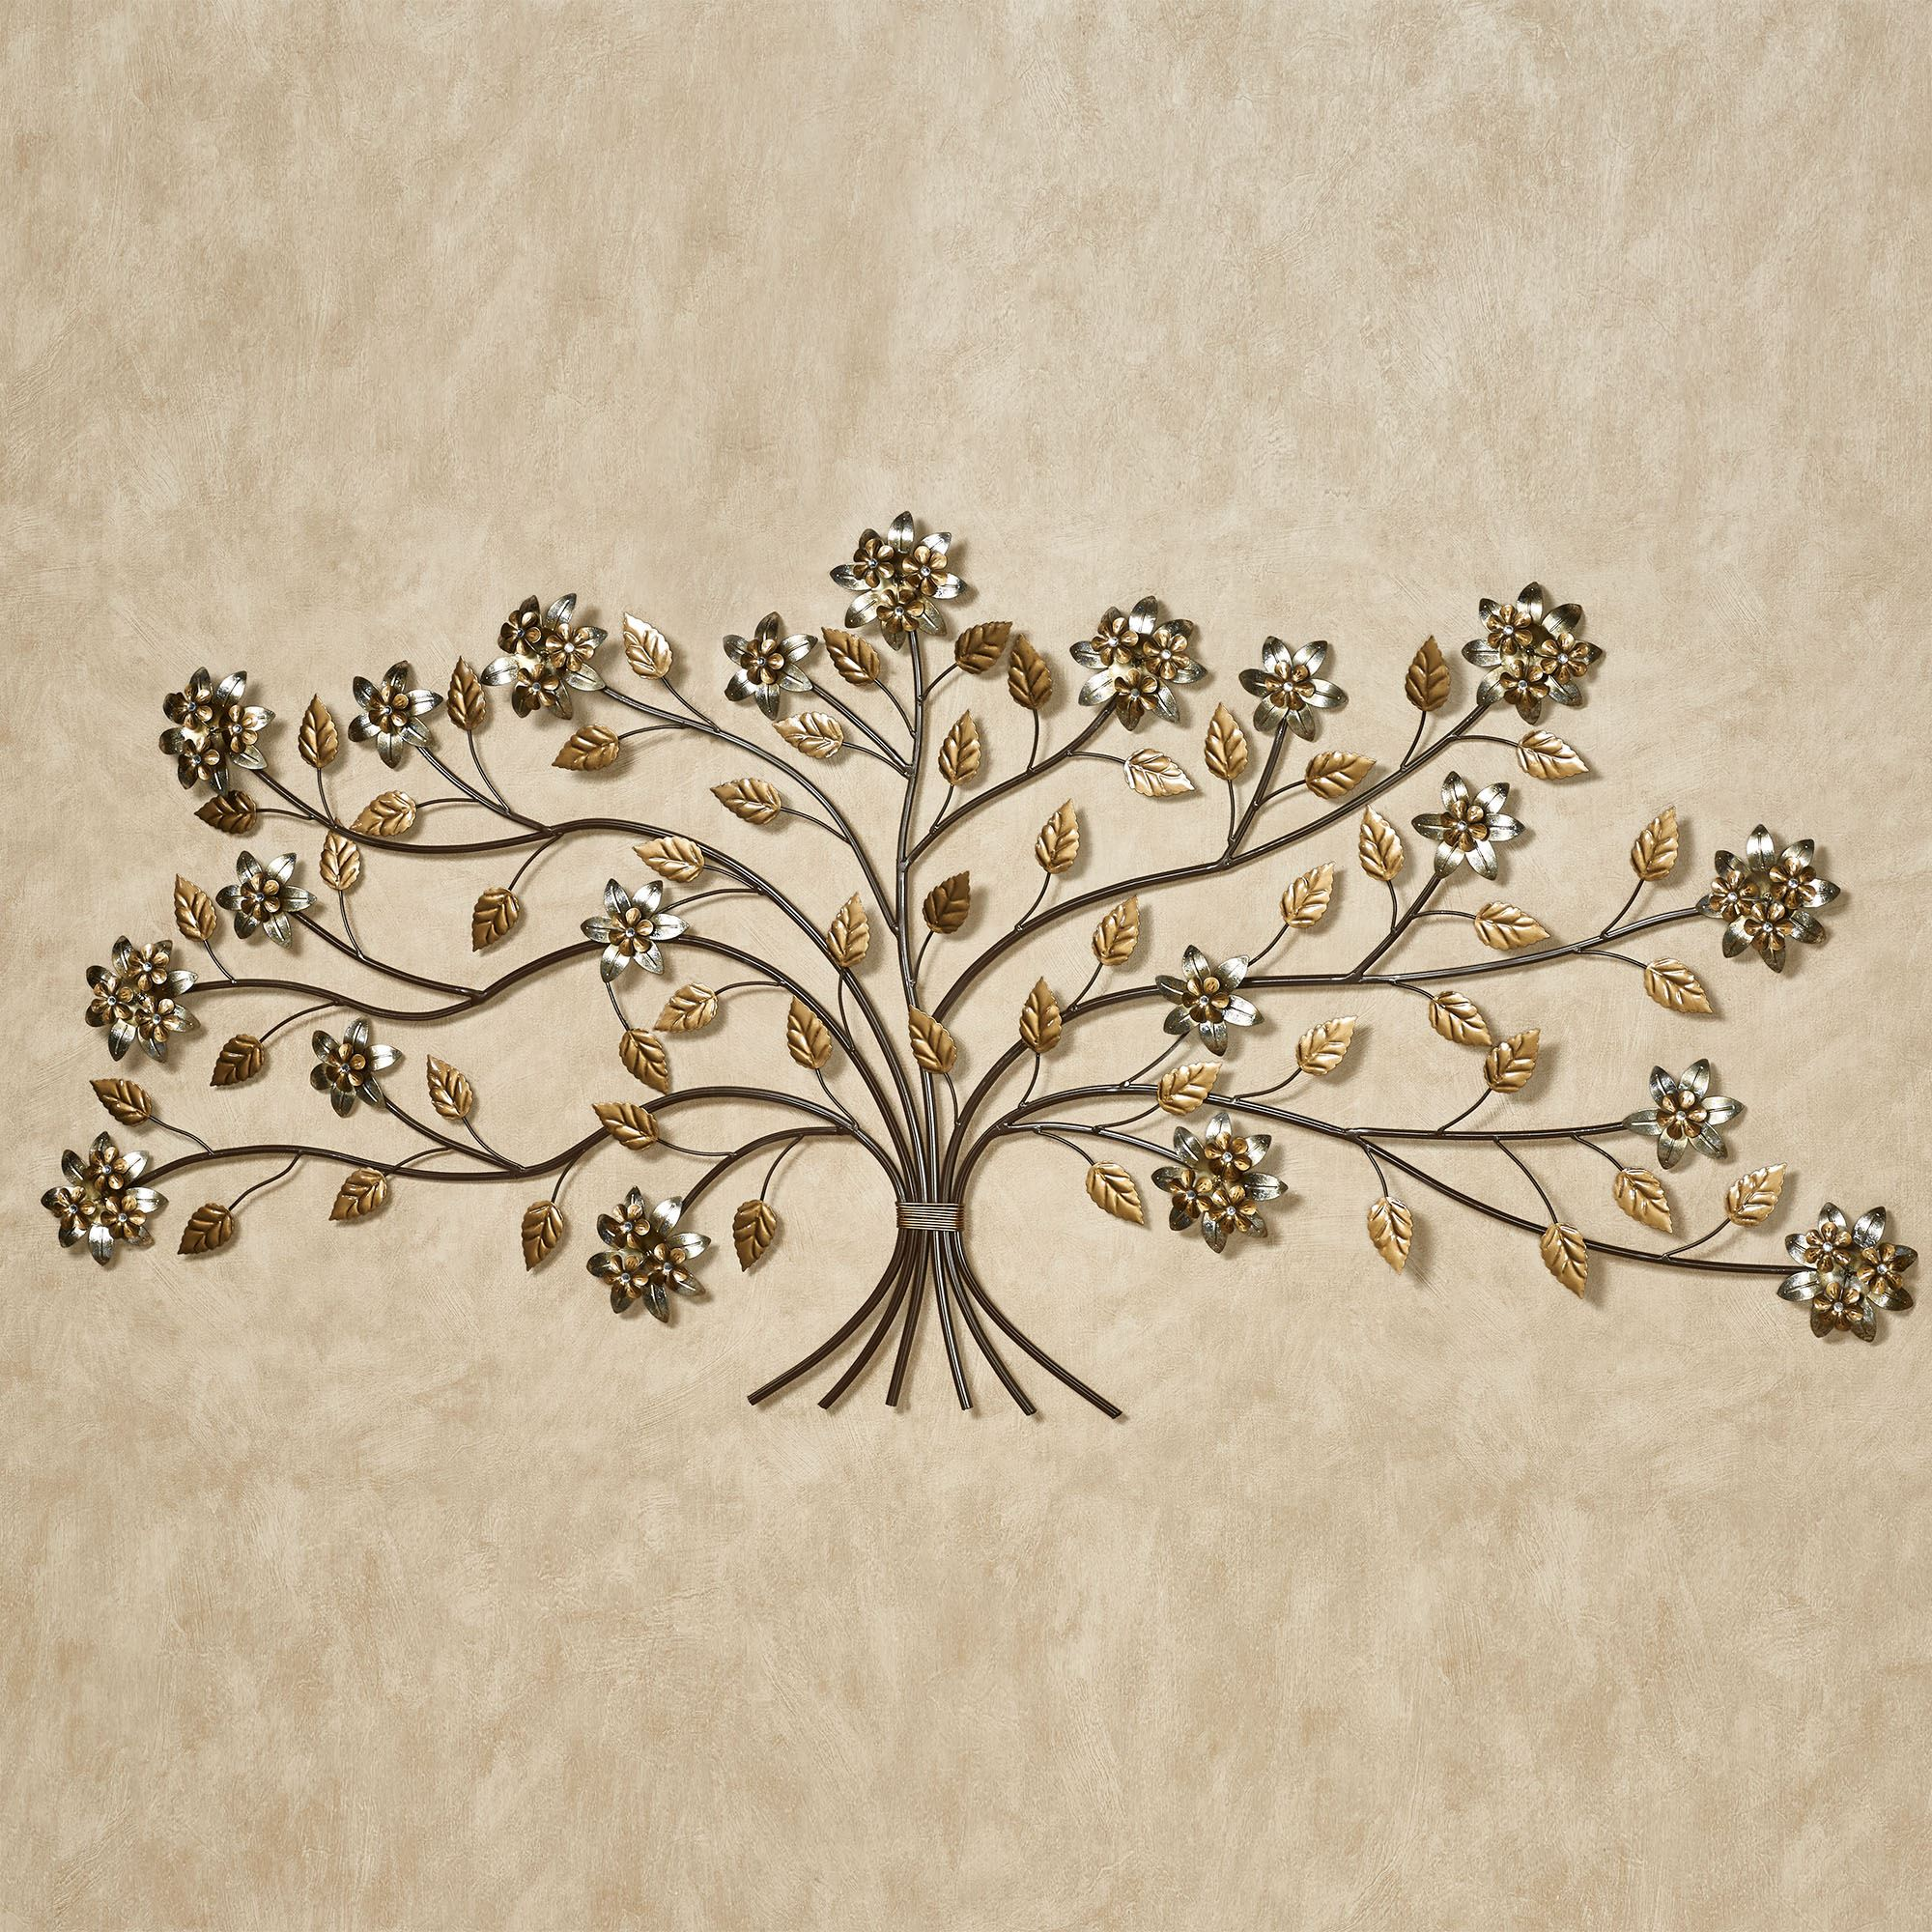 Bellissa Floral Branch Metal Wall Art   59 Inches Wide